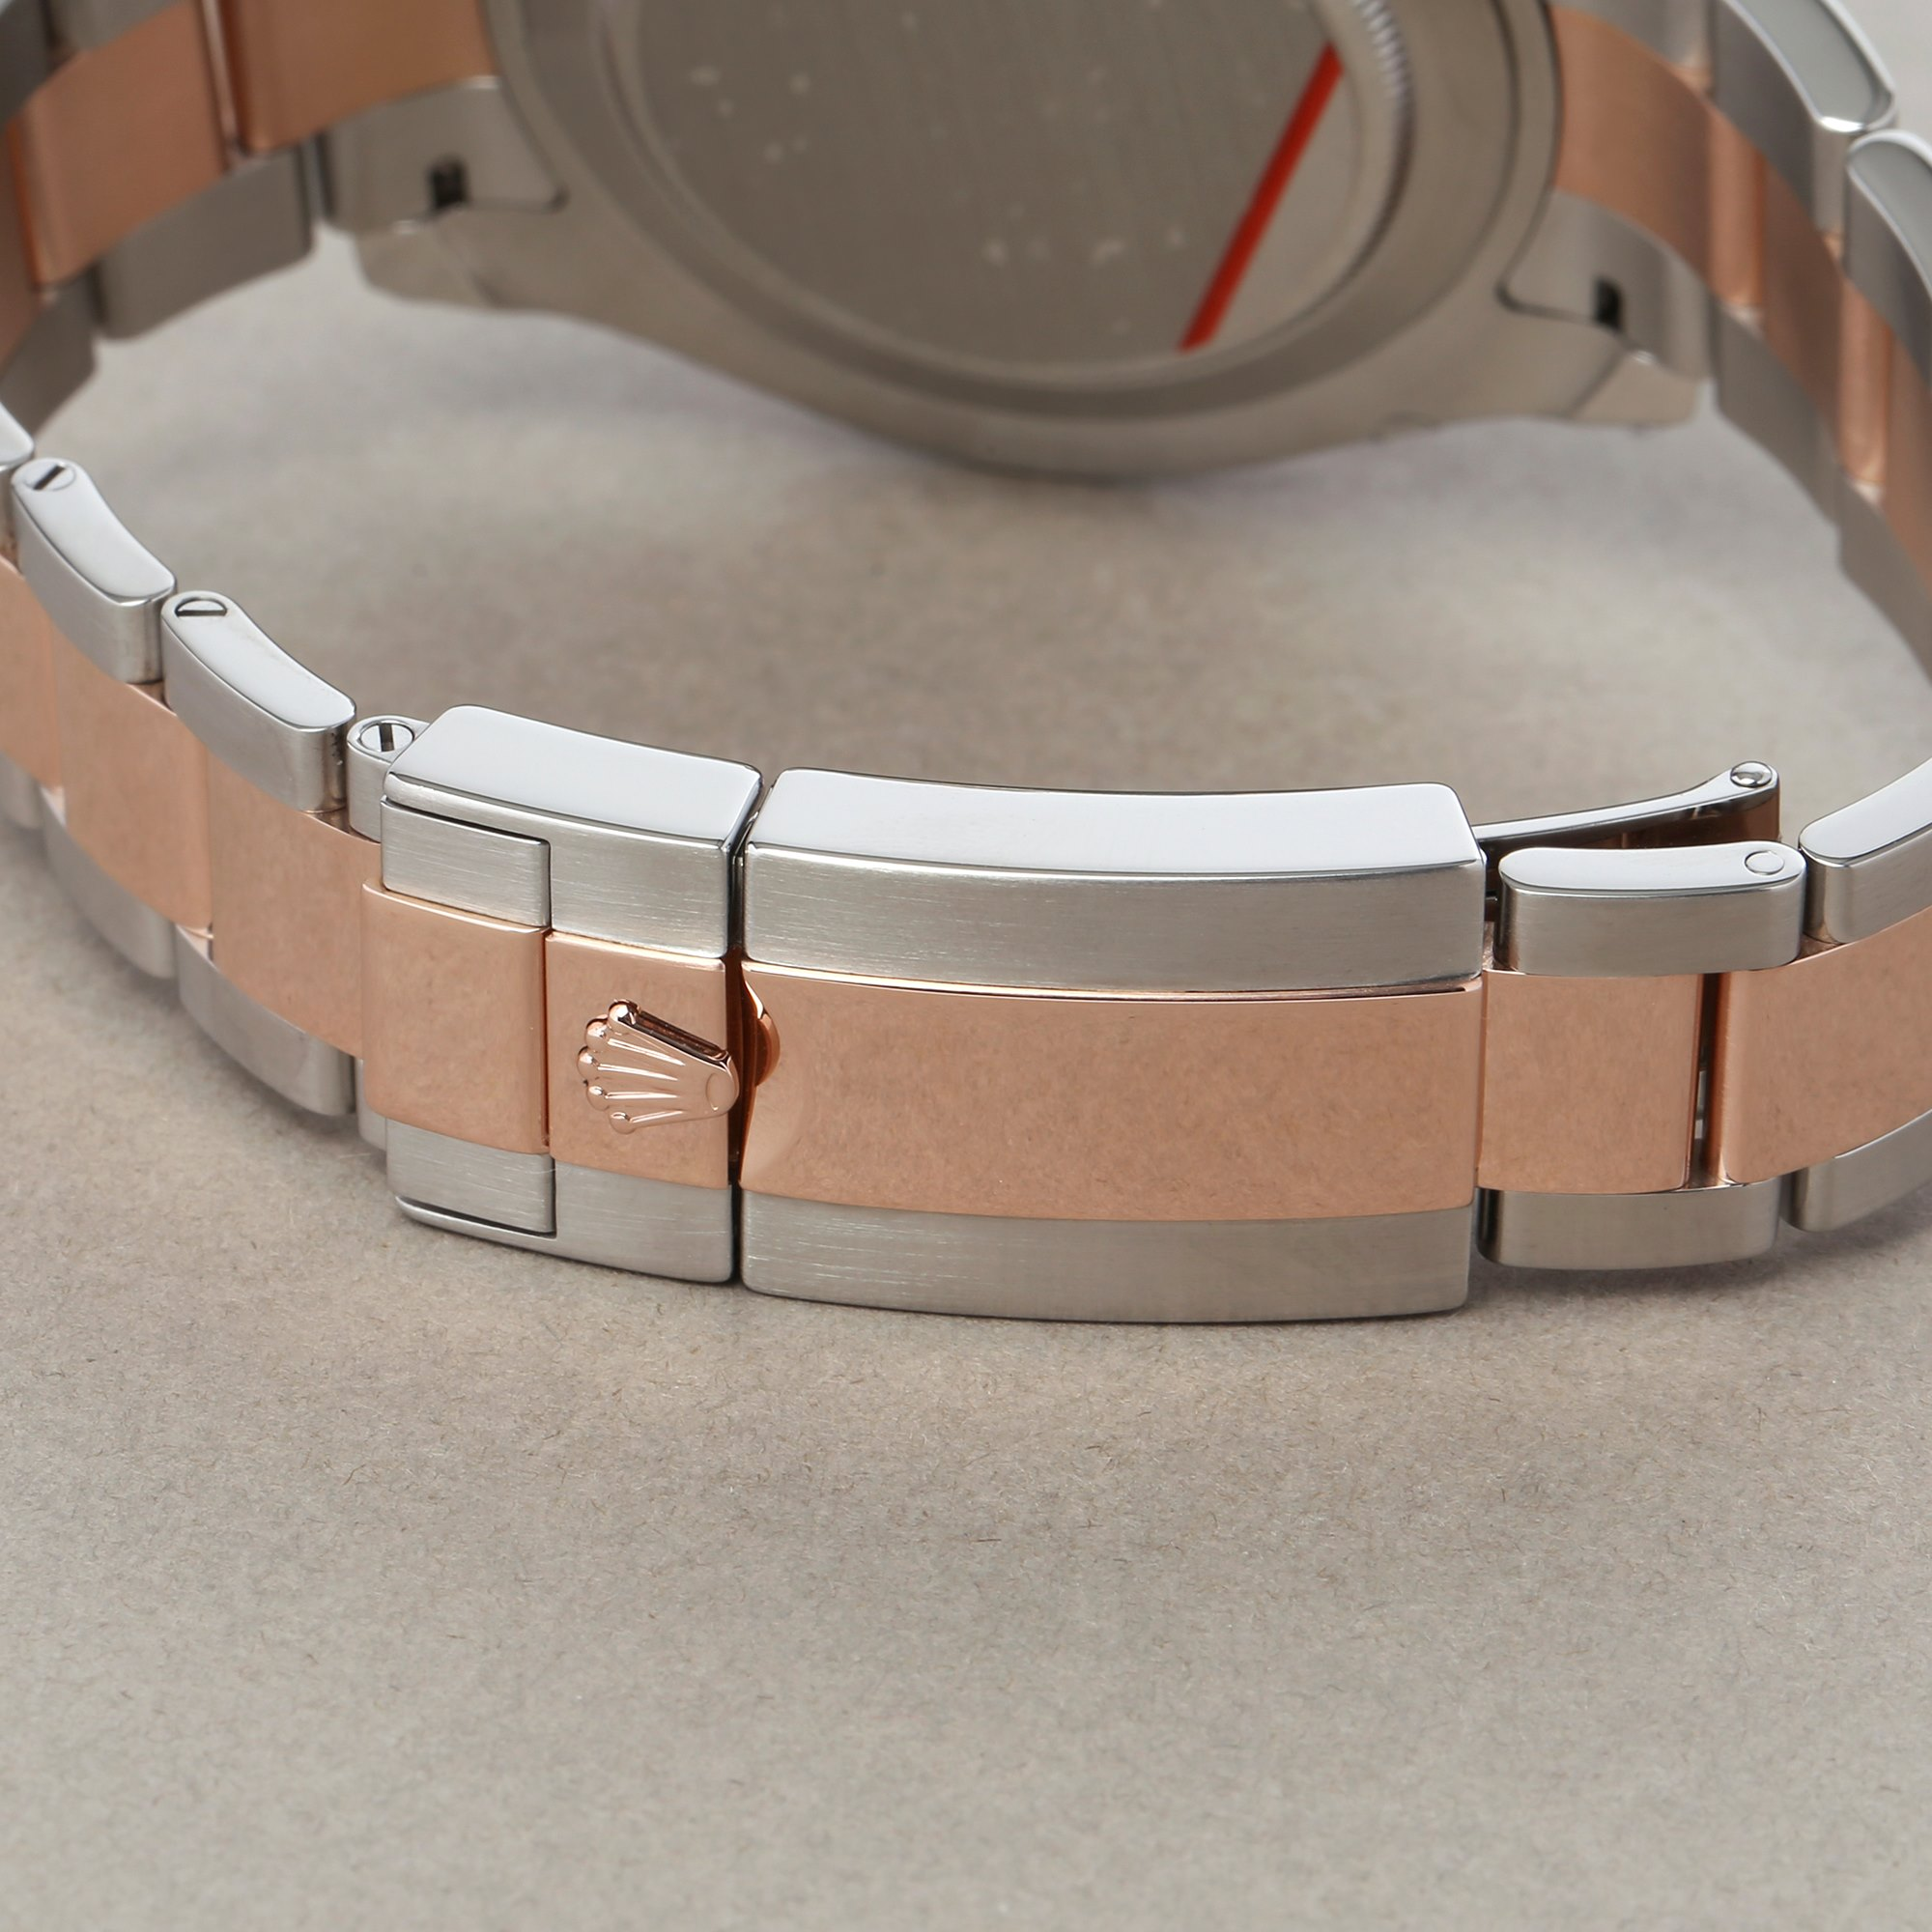 Rolex Yacht-Master II 116681 Men's Rose Gold & Stainless Steel Watch - Image 4 of 10